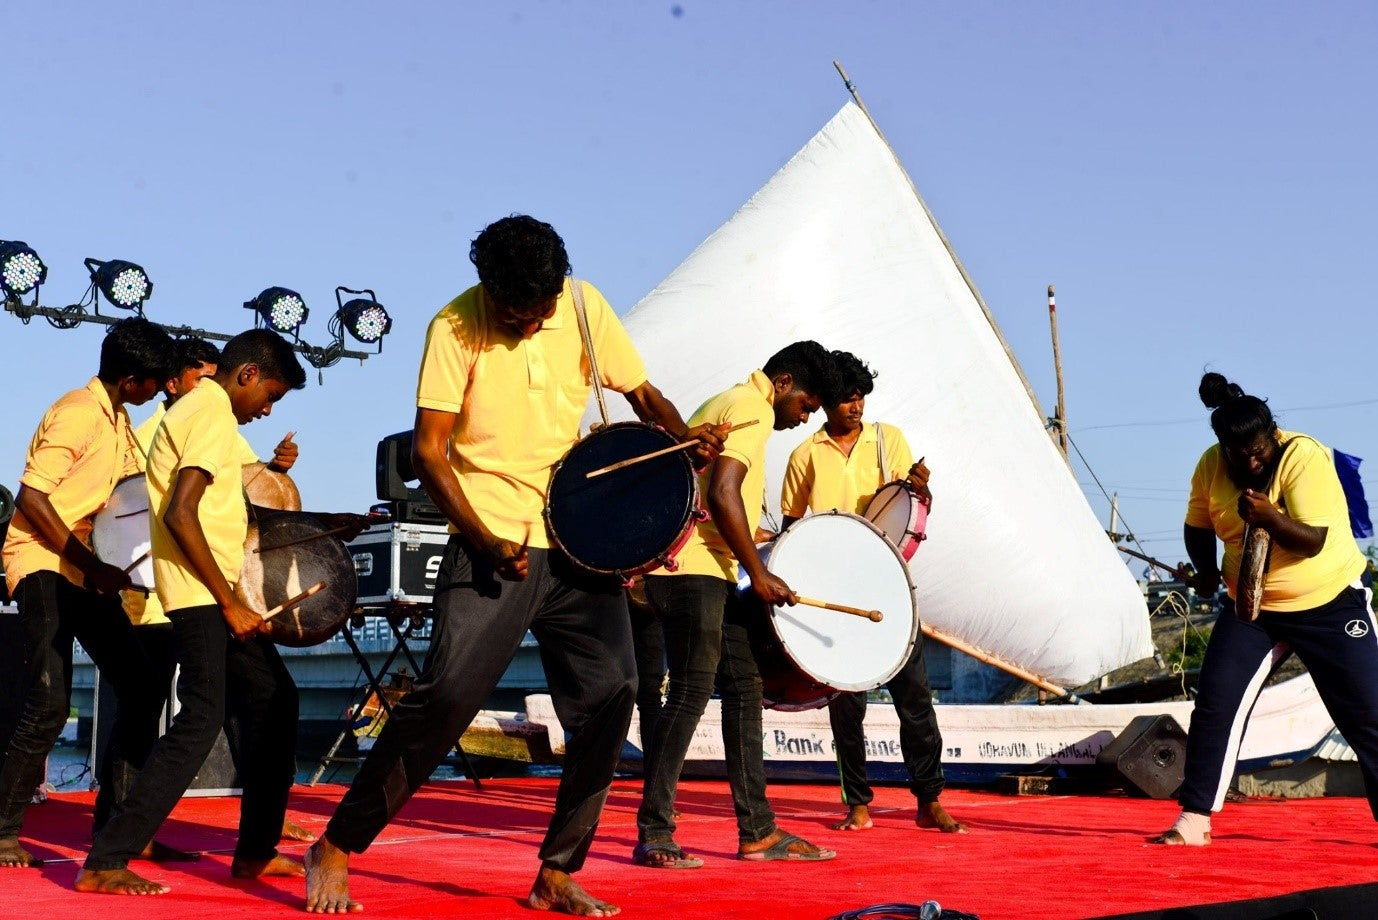 The Many Lives of Land - Live Performance at the Festival of the Commons - Credit: Chennai Kalai Theru Vizha